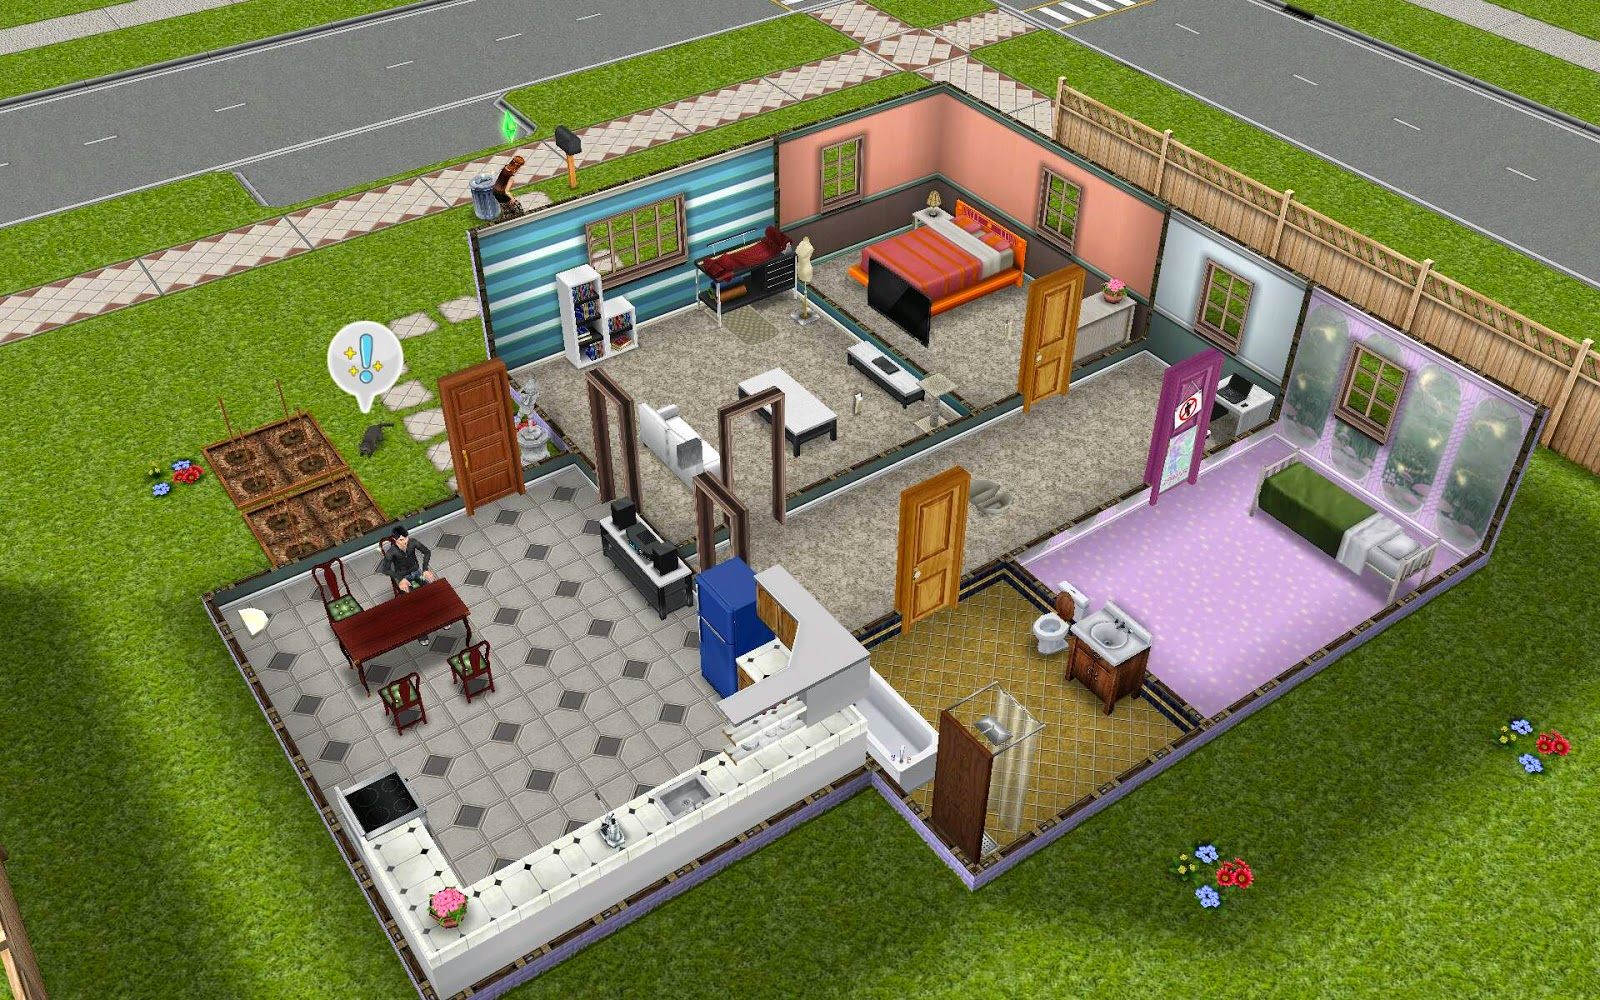 20150411_161846 Sim Freeplay Designs Ideas For Home on sims free play fashion designers, sims free play fashion studio, sims freeplay home design, sims freeplay dream home, sims freeplay garden ideas, sims freeplay premium home pack, sims house ideas, sims freeplay christmas ideas, sims free play home, sims freeplay pool ideas,